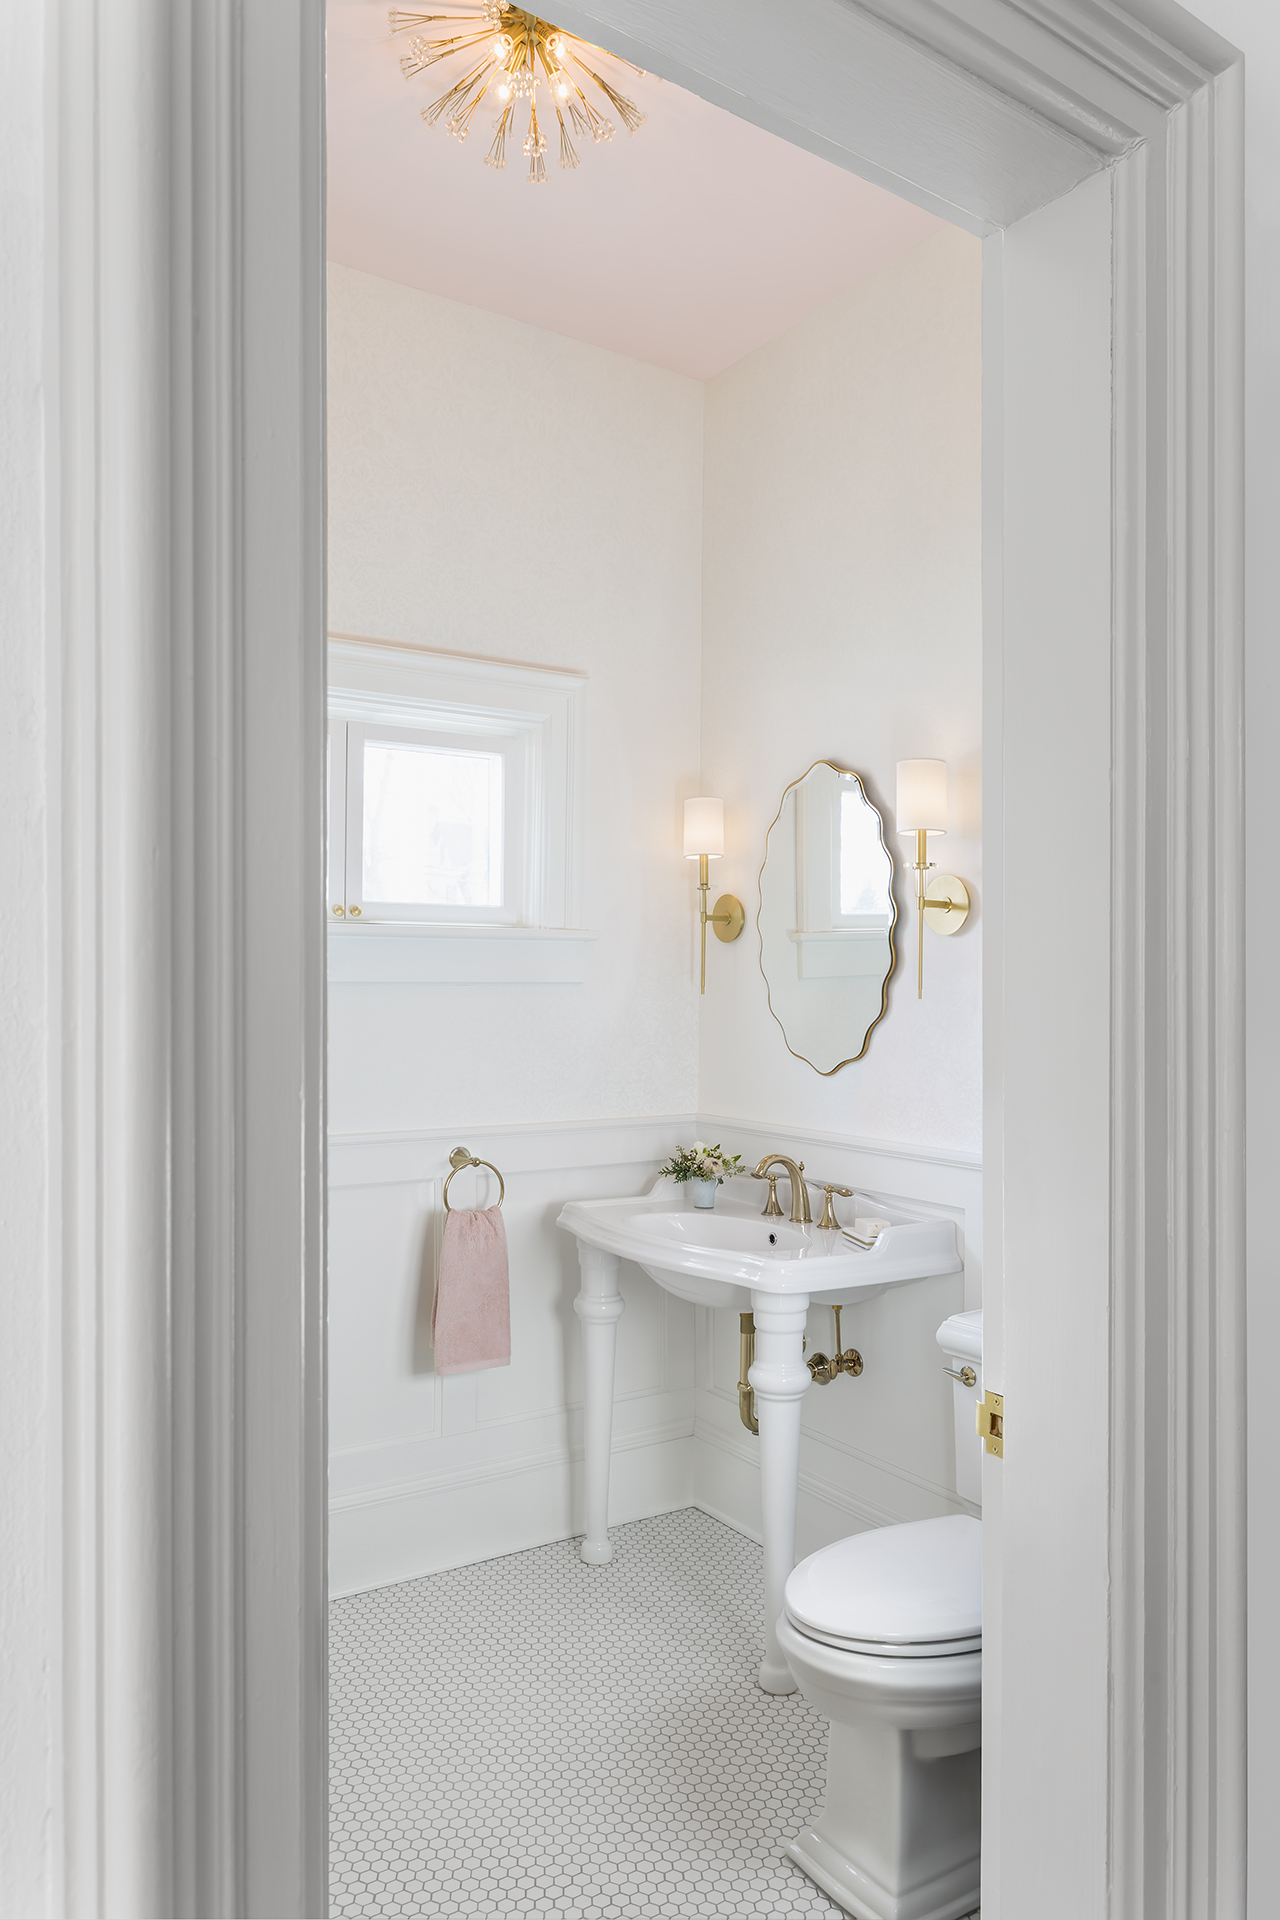 Each of the design elements work together to make this small room blend in seamlessly with the historic home.